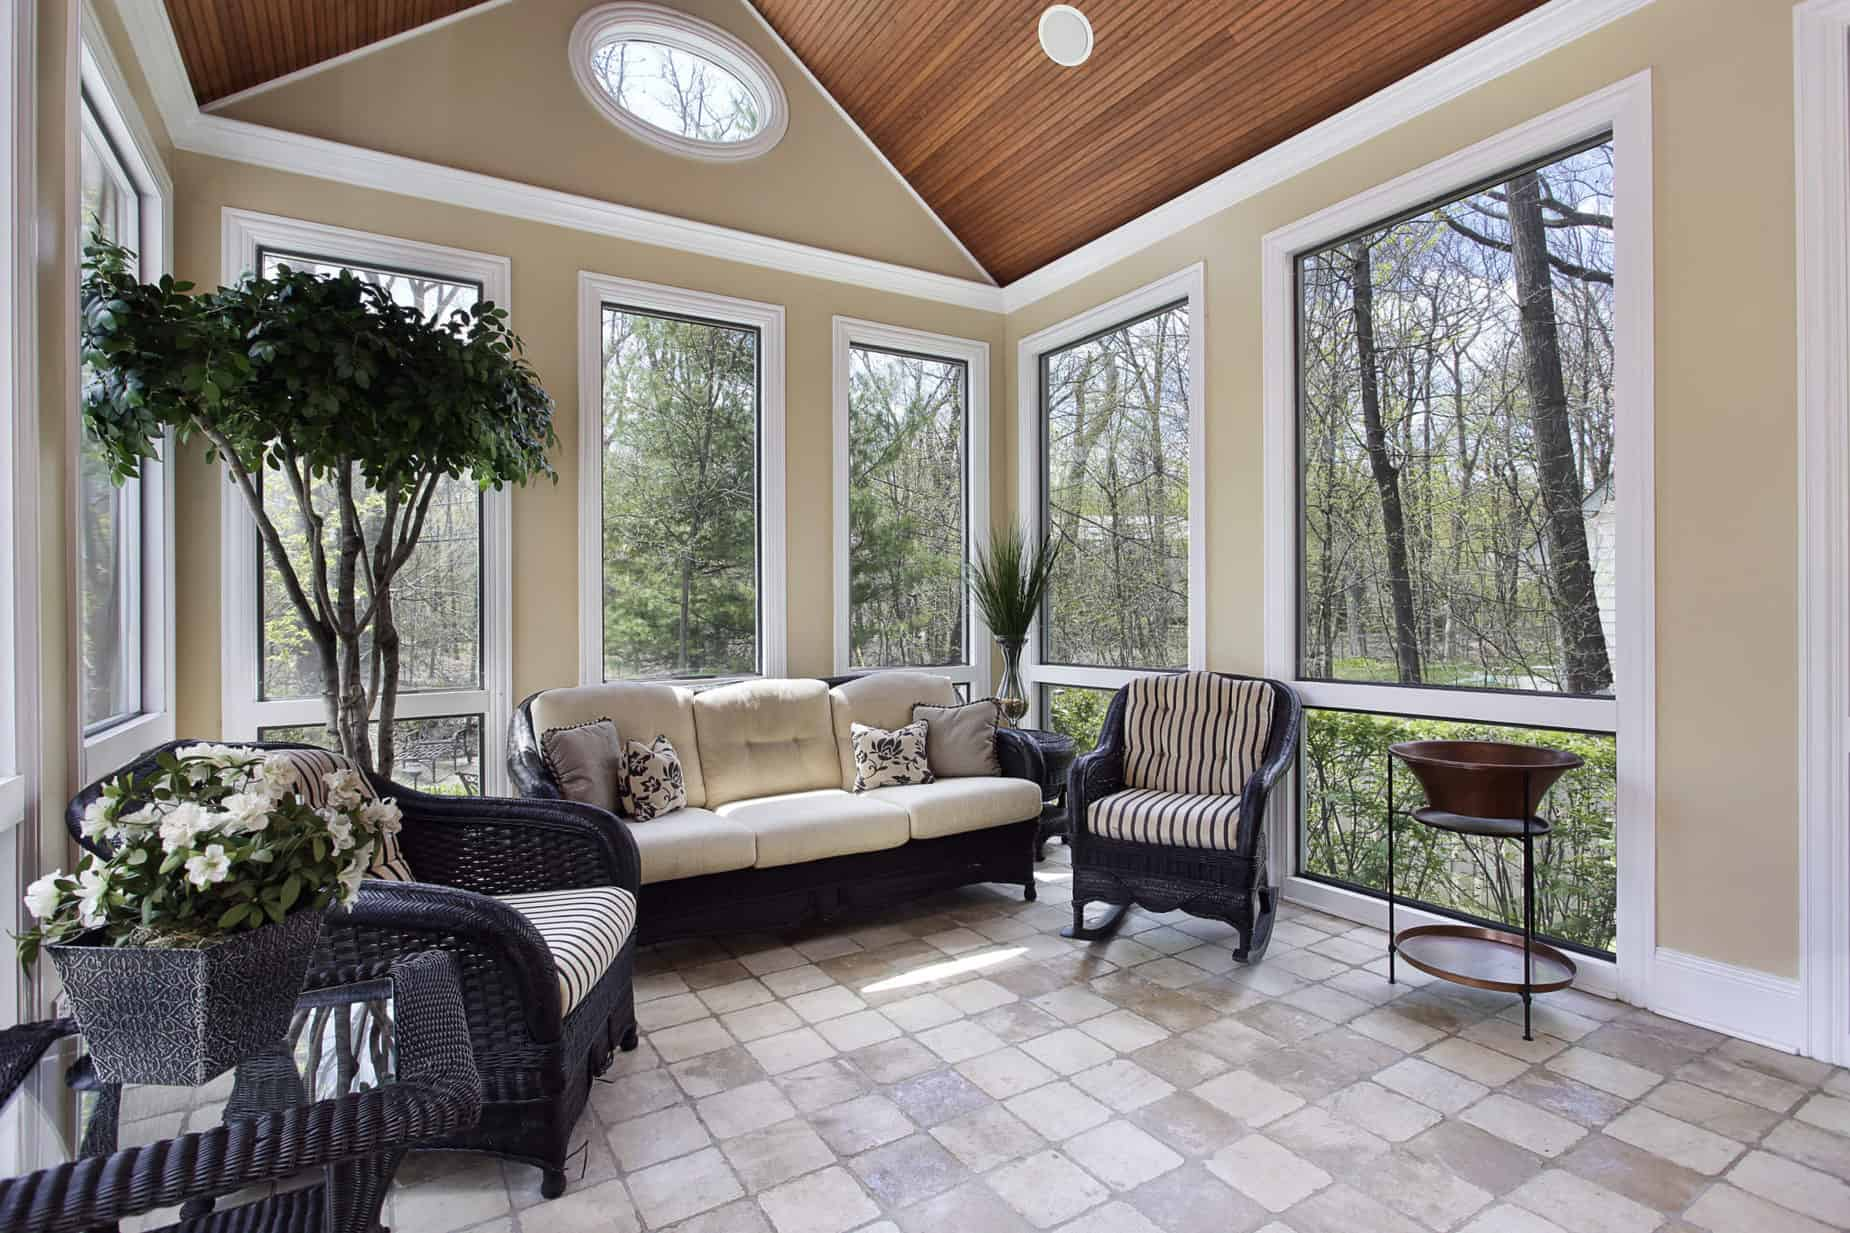 Enlarge Your Interior Area While Creating The Sensation Of Being Outside